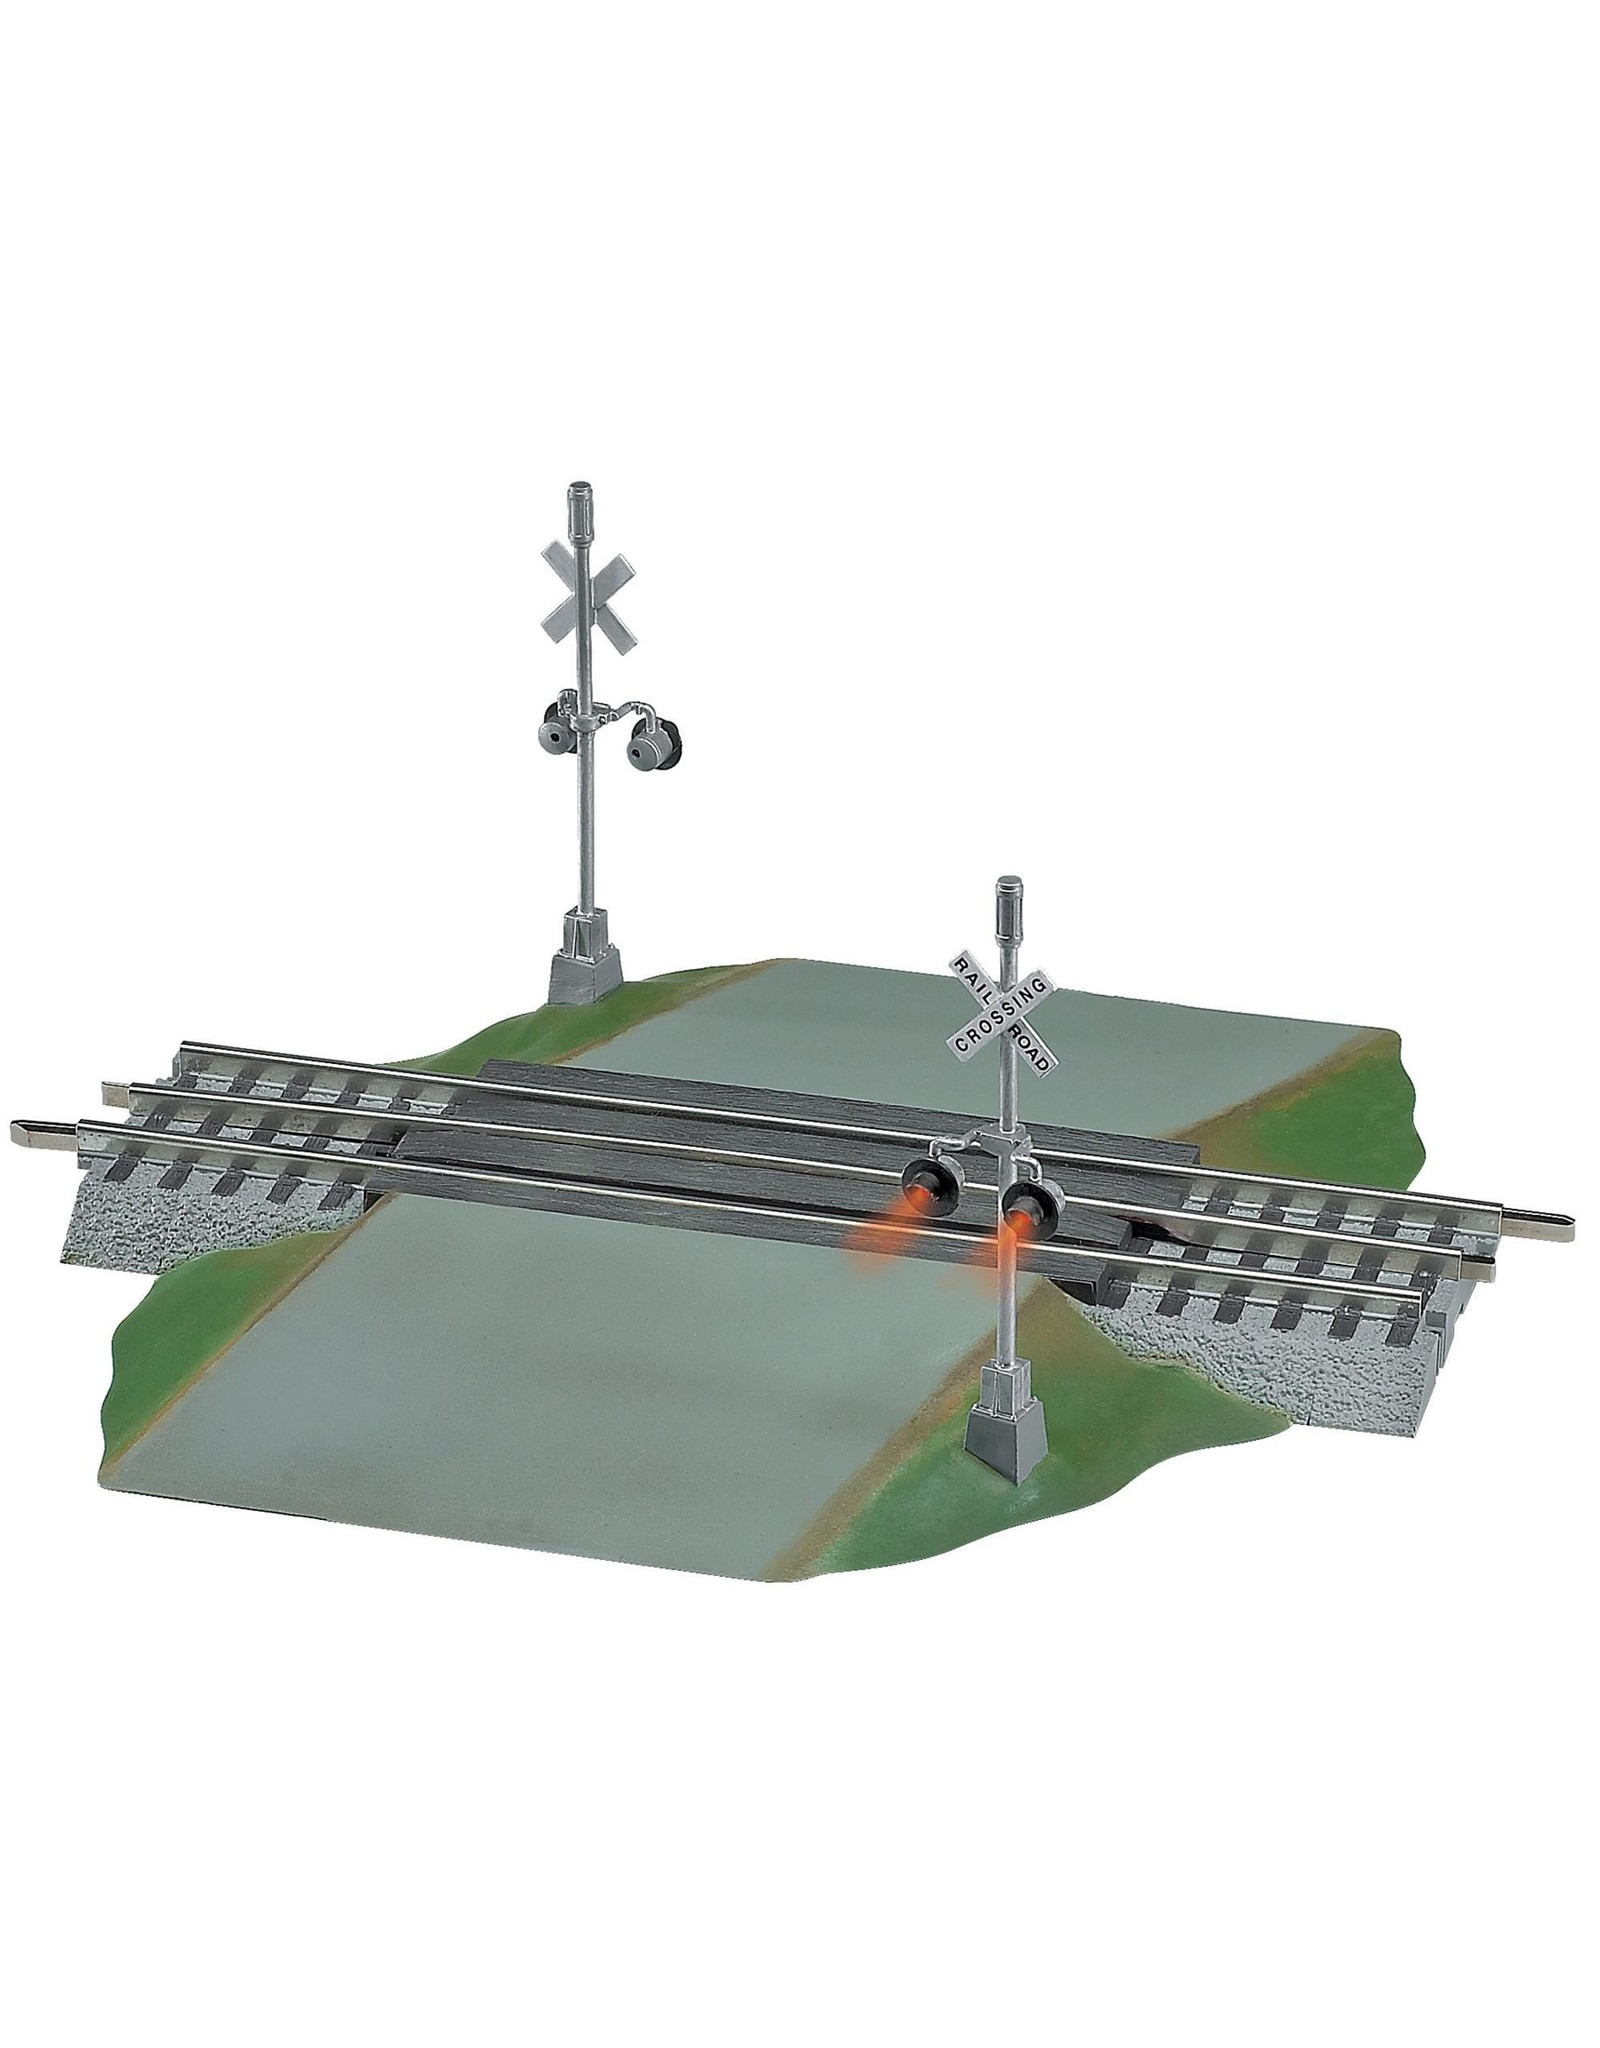 Lionel FasTrack Grade Crossing with Flashers